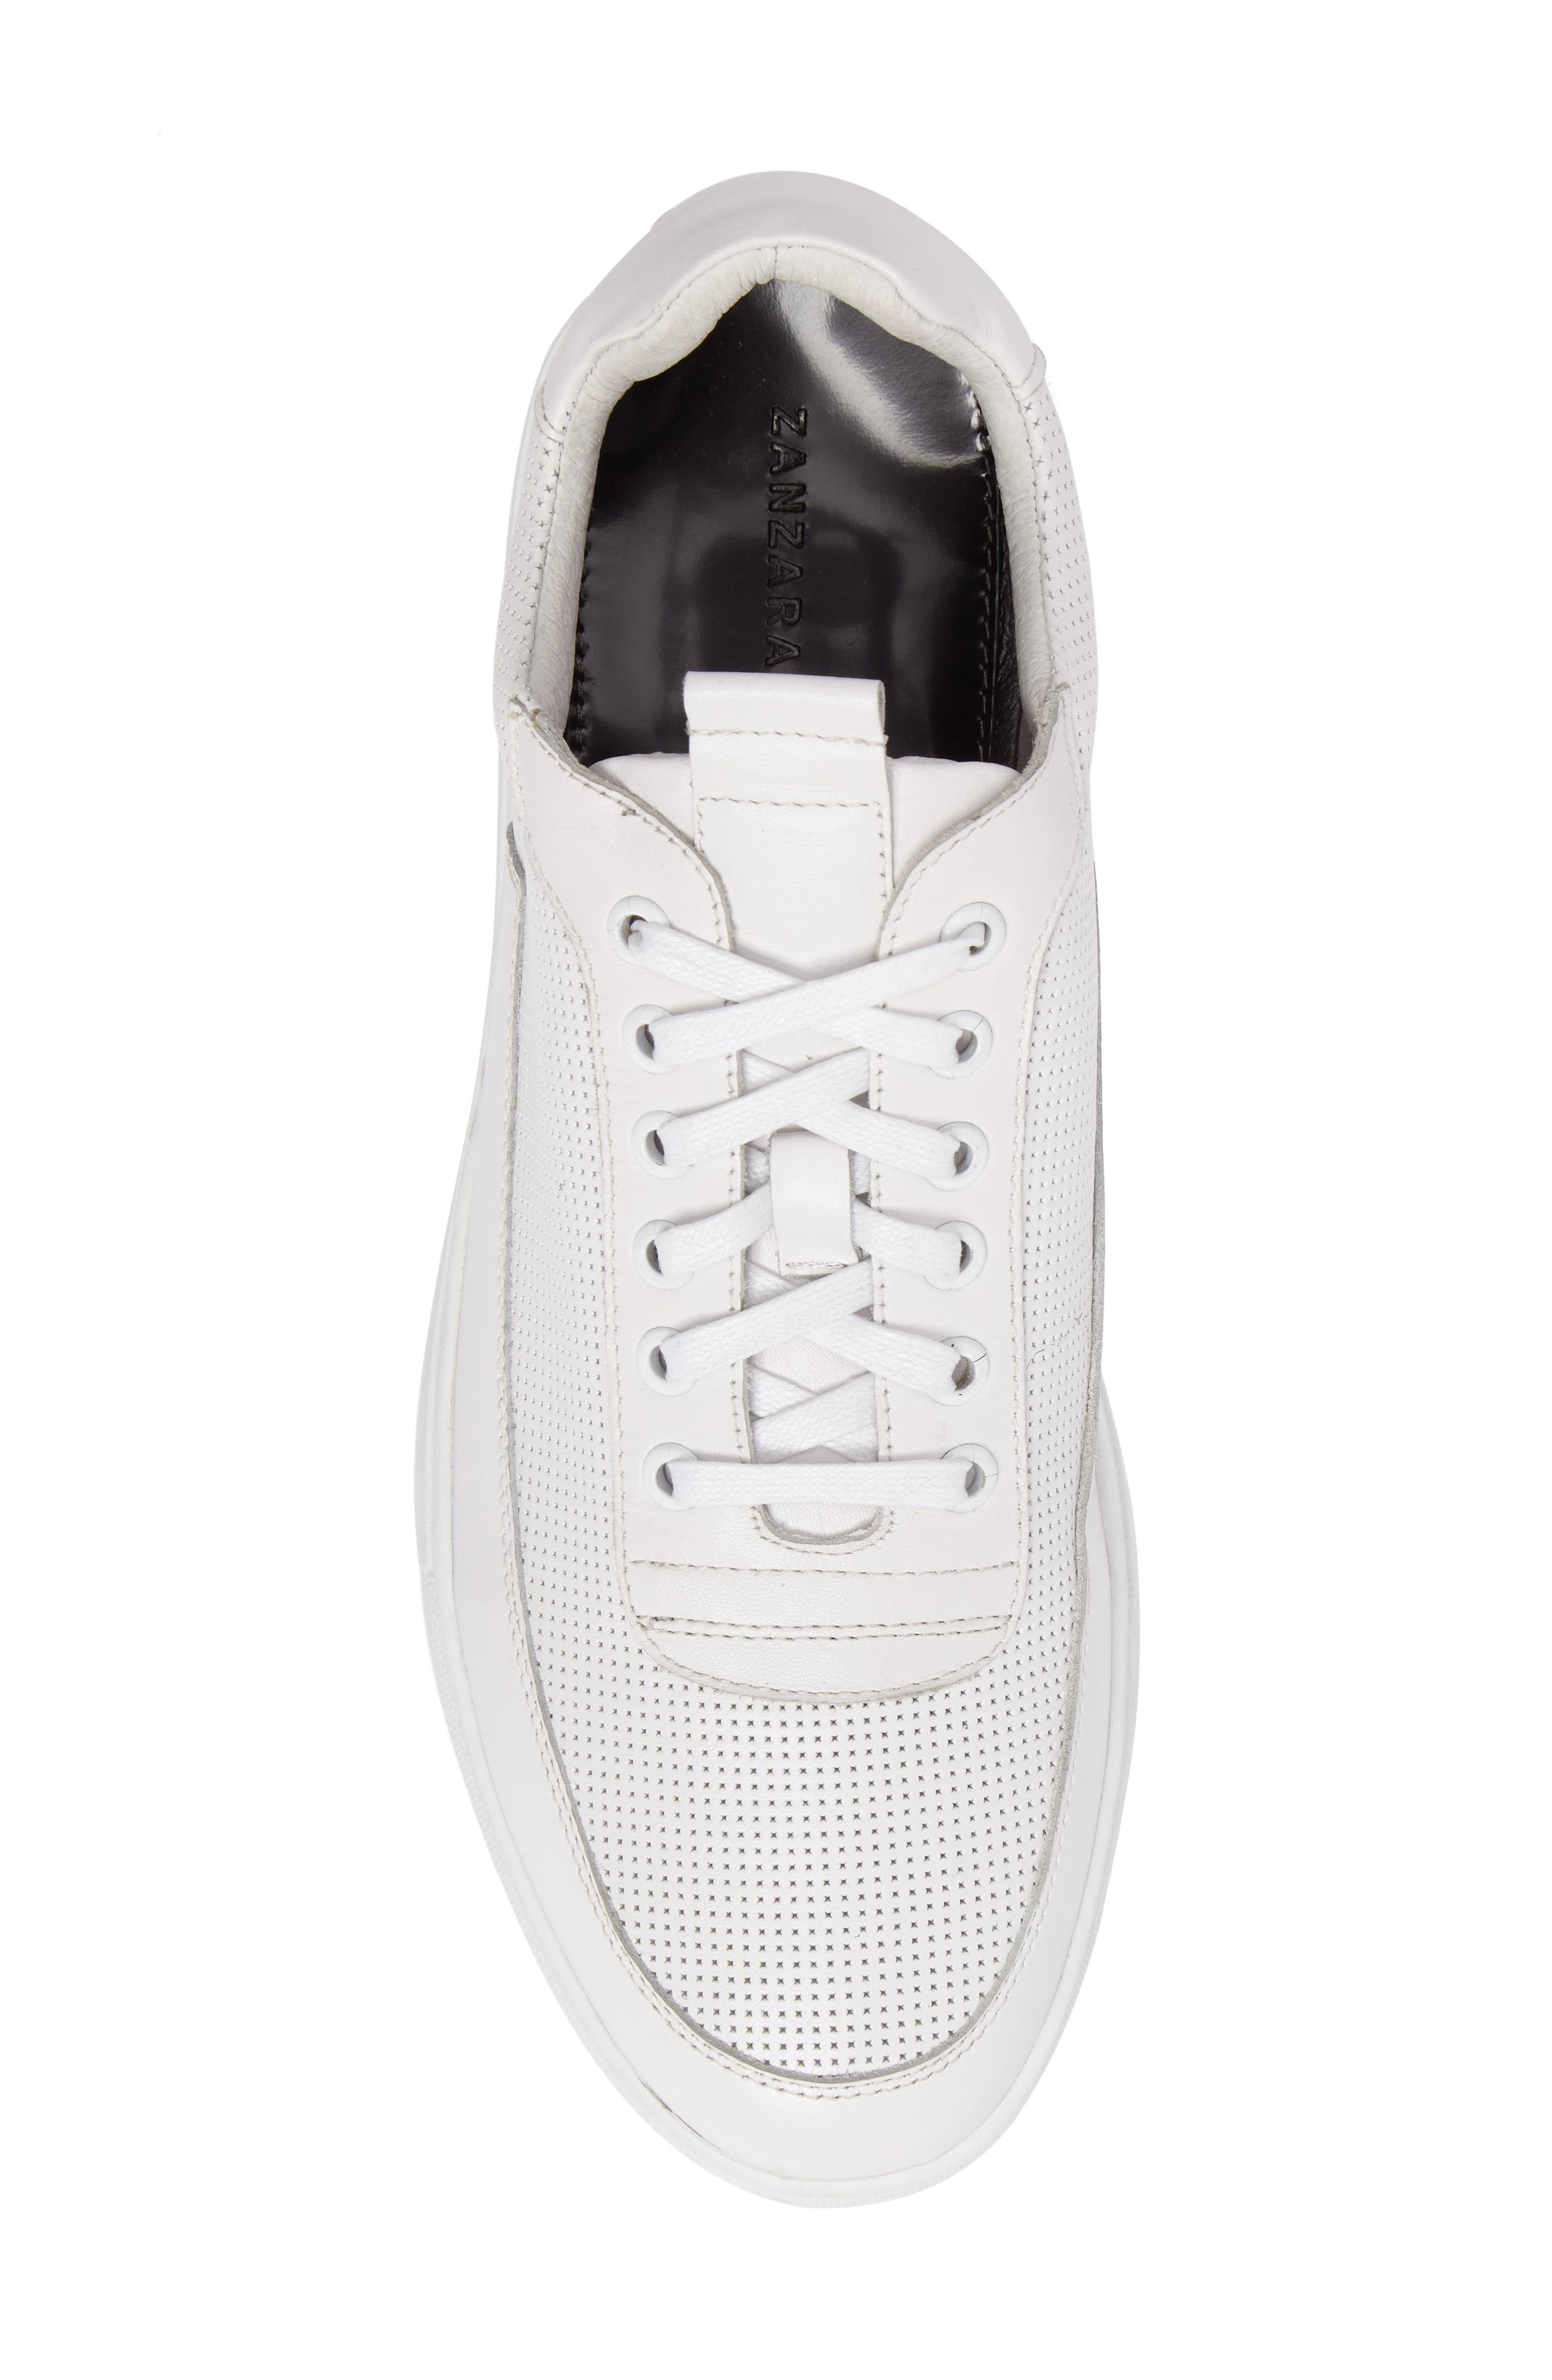 Harmony Sneaker,                             Alternate thumbnail 5, color,                             WHITE LEATHER